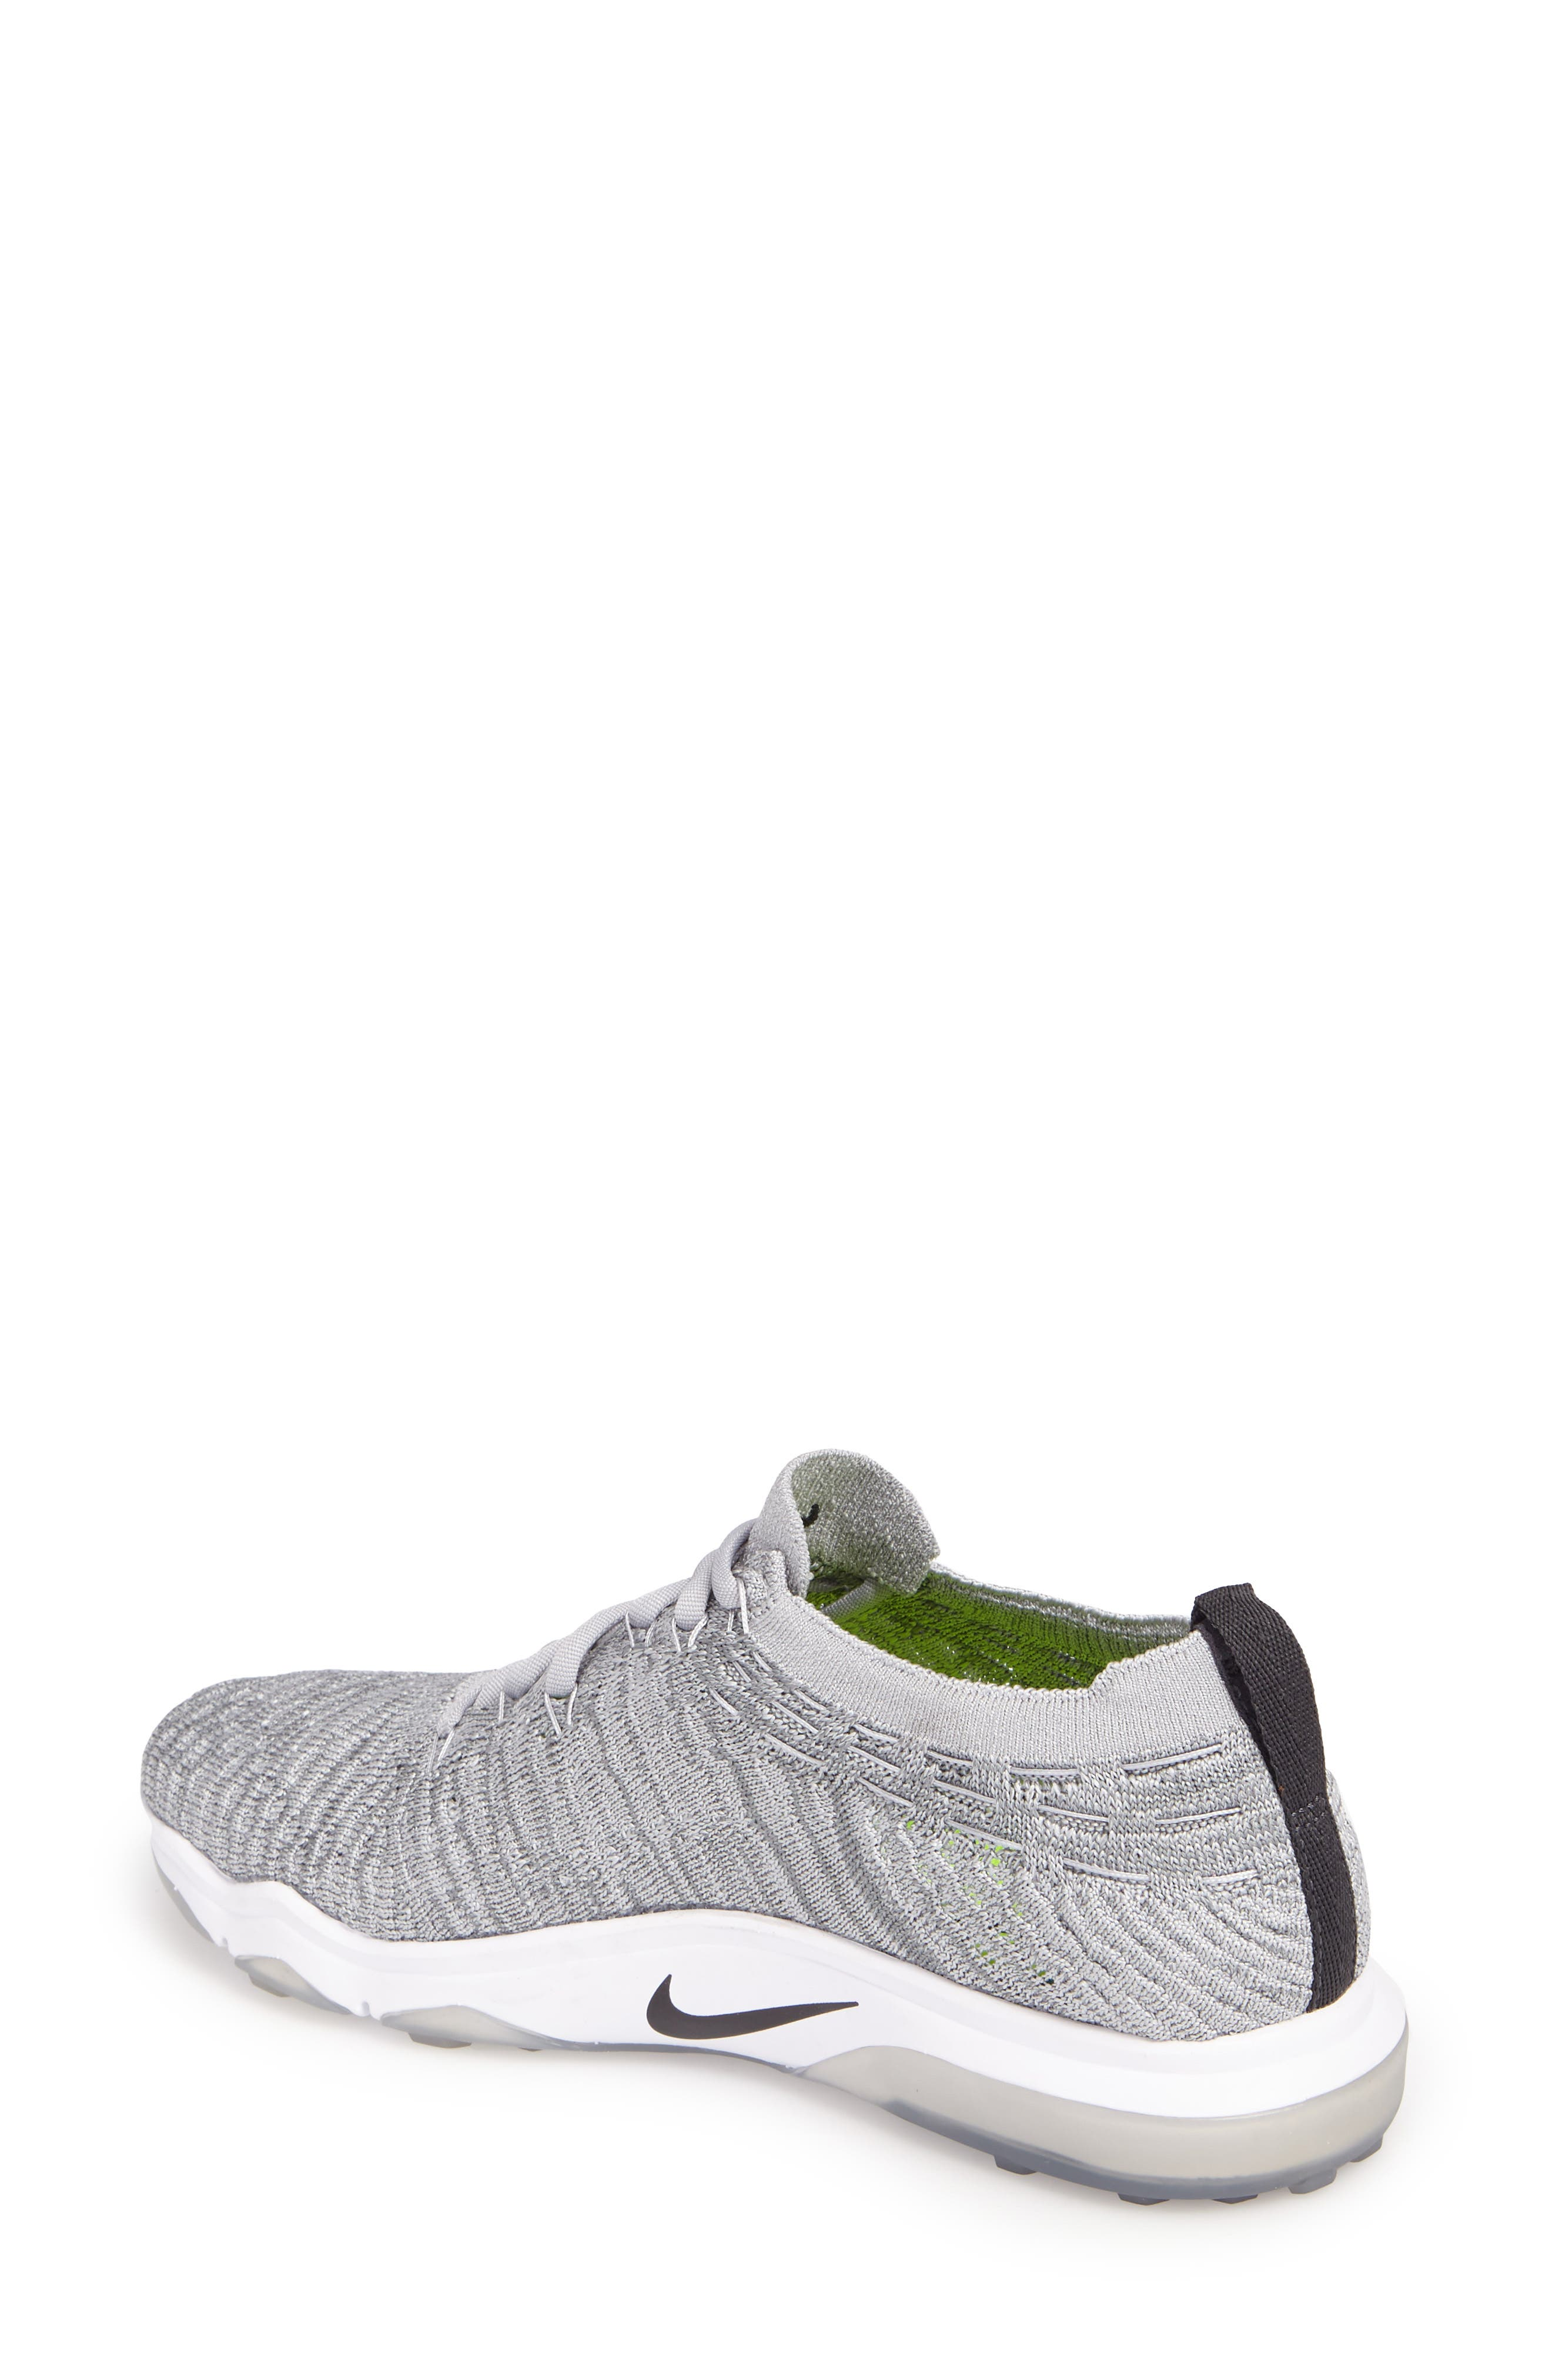 Air Zoom Fearless Flyknit Lux Training Shoe,                             Alternate thumbnail 8, color,